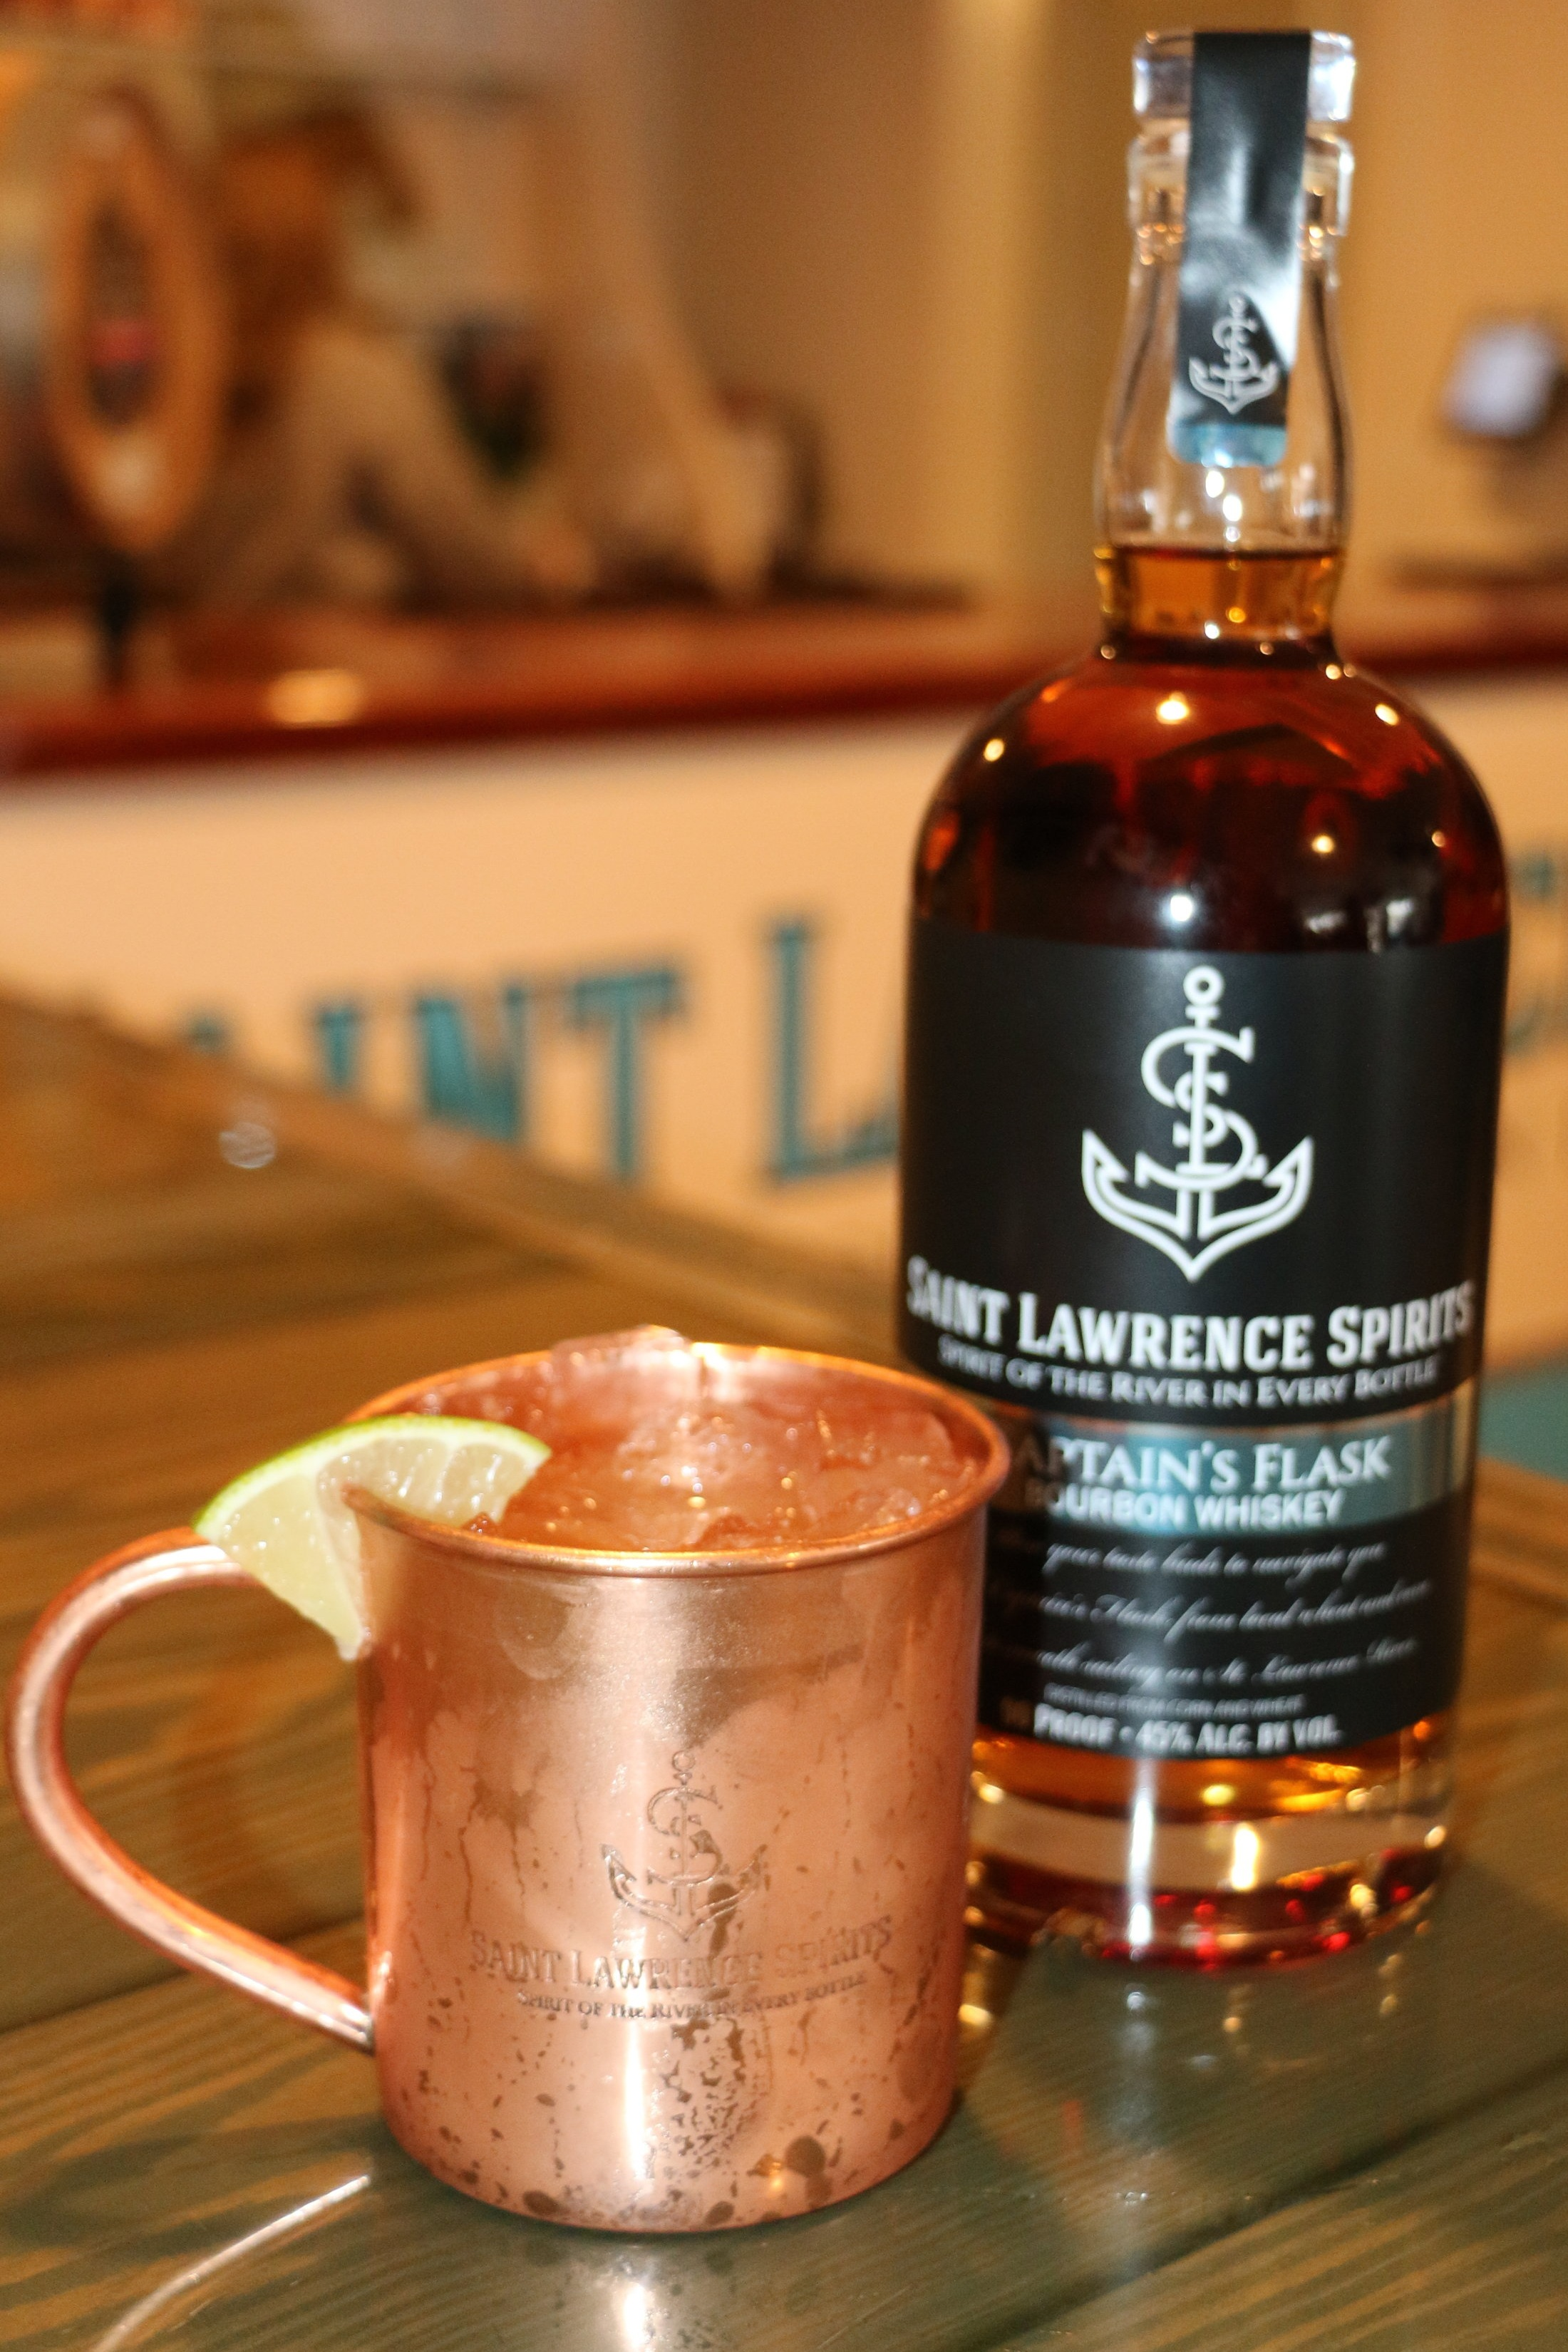 Shipwrecked Mule - 1,5 oz Captain's Flask Bourbon.5 oz. Lime JuiceYour Favorite Ginger Beer.Top with Ginger Beer in an Ice Filled Copper Cup & Enjoy.